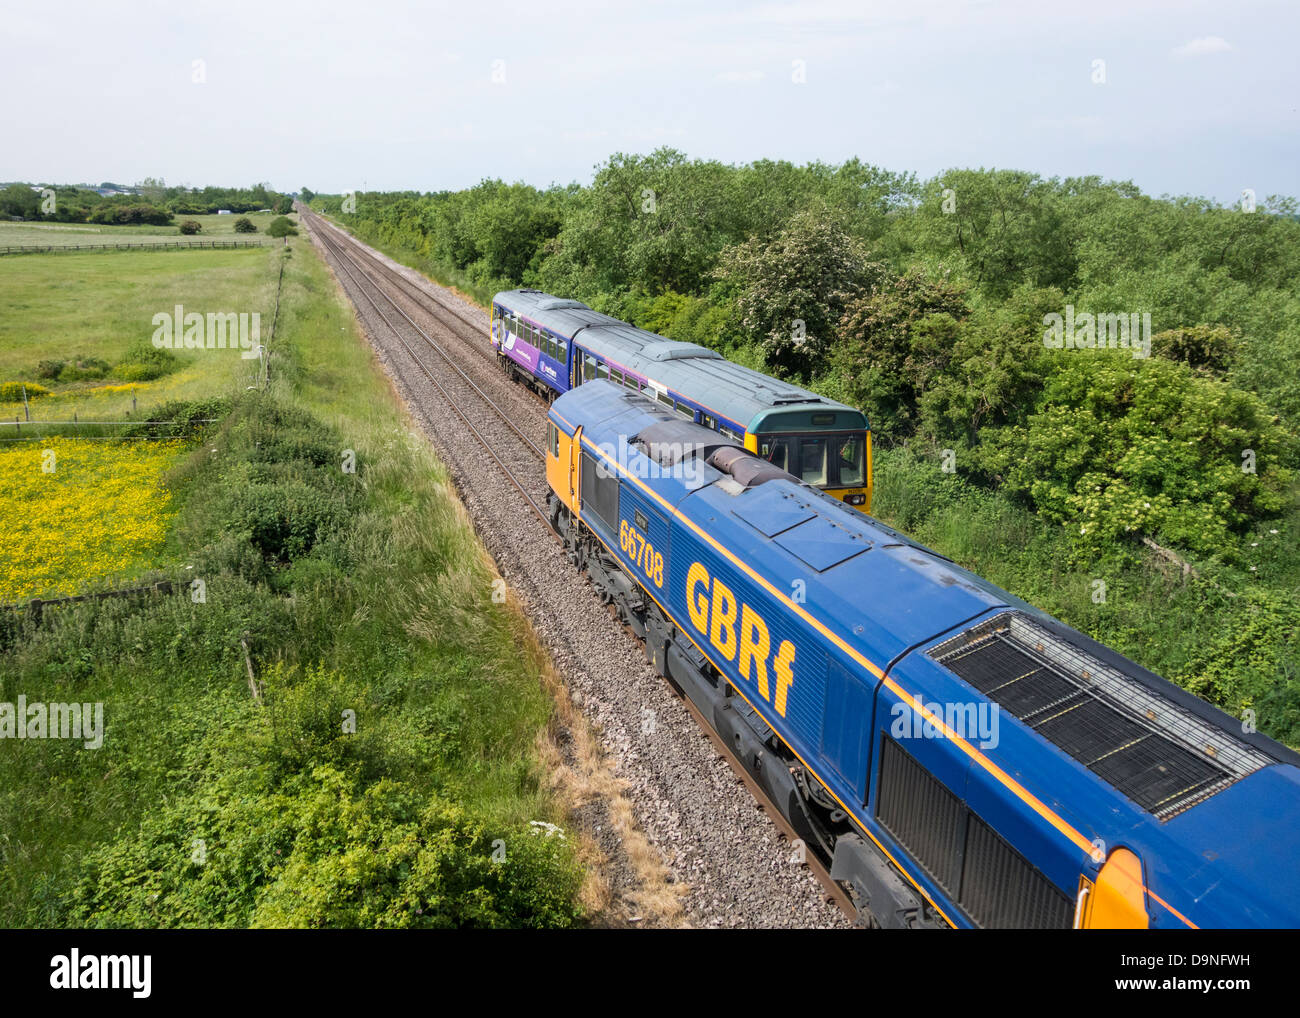 GBR Freight train and Northern Rail passenger train on Northern Rail line near Billingham, north east England, UK - Stock Image